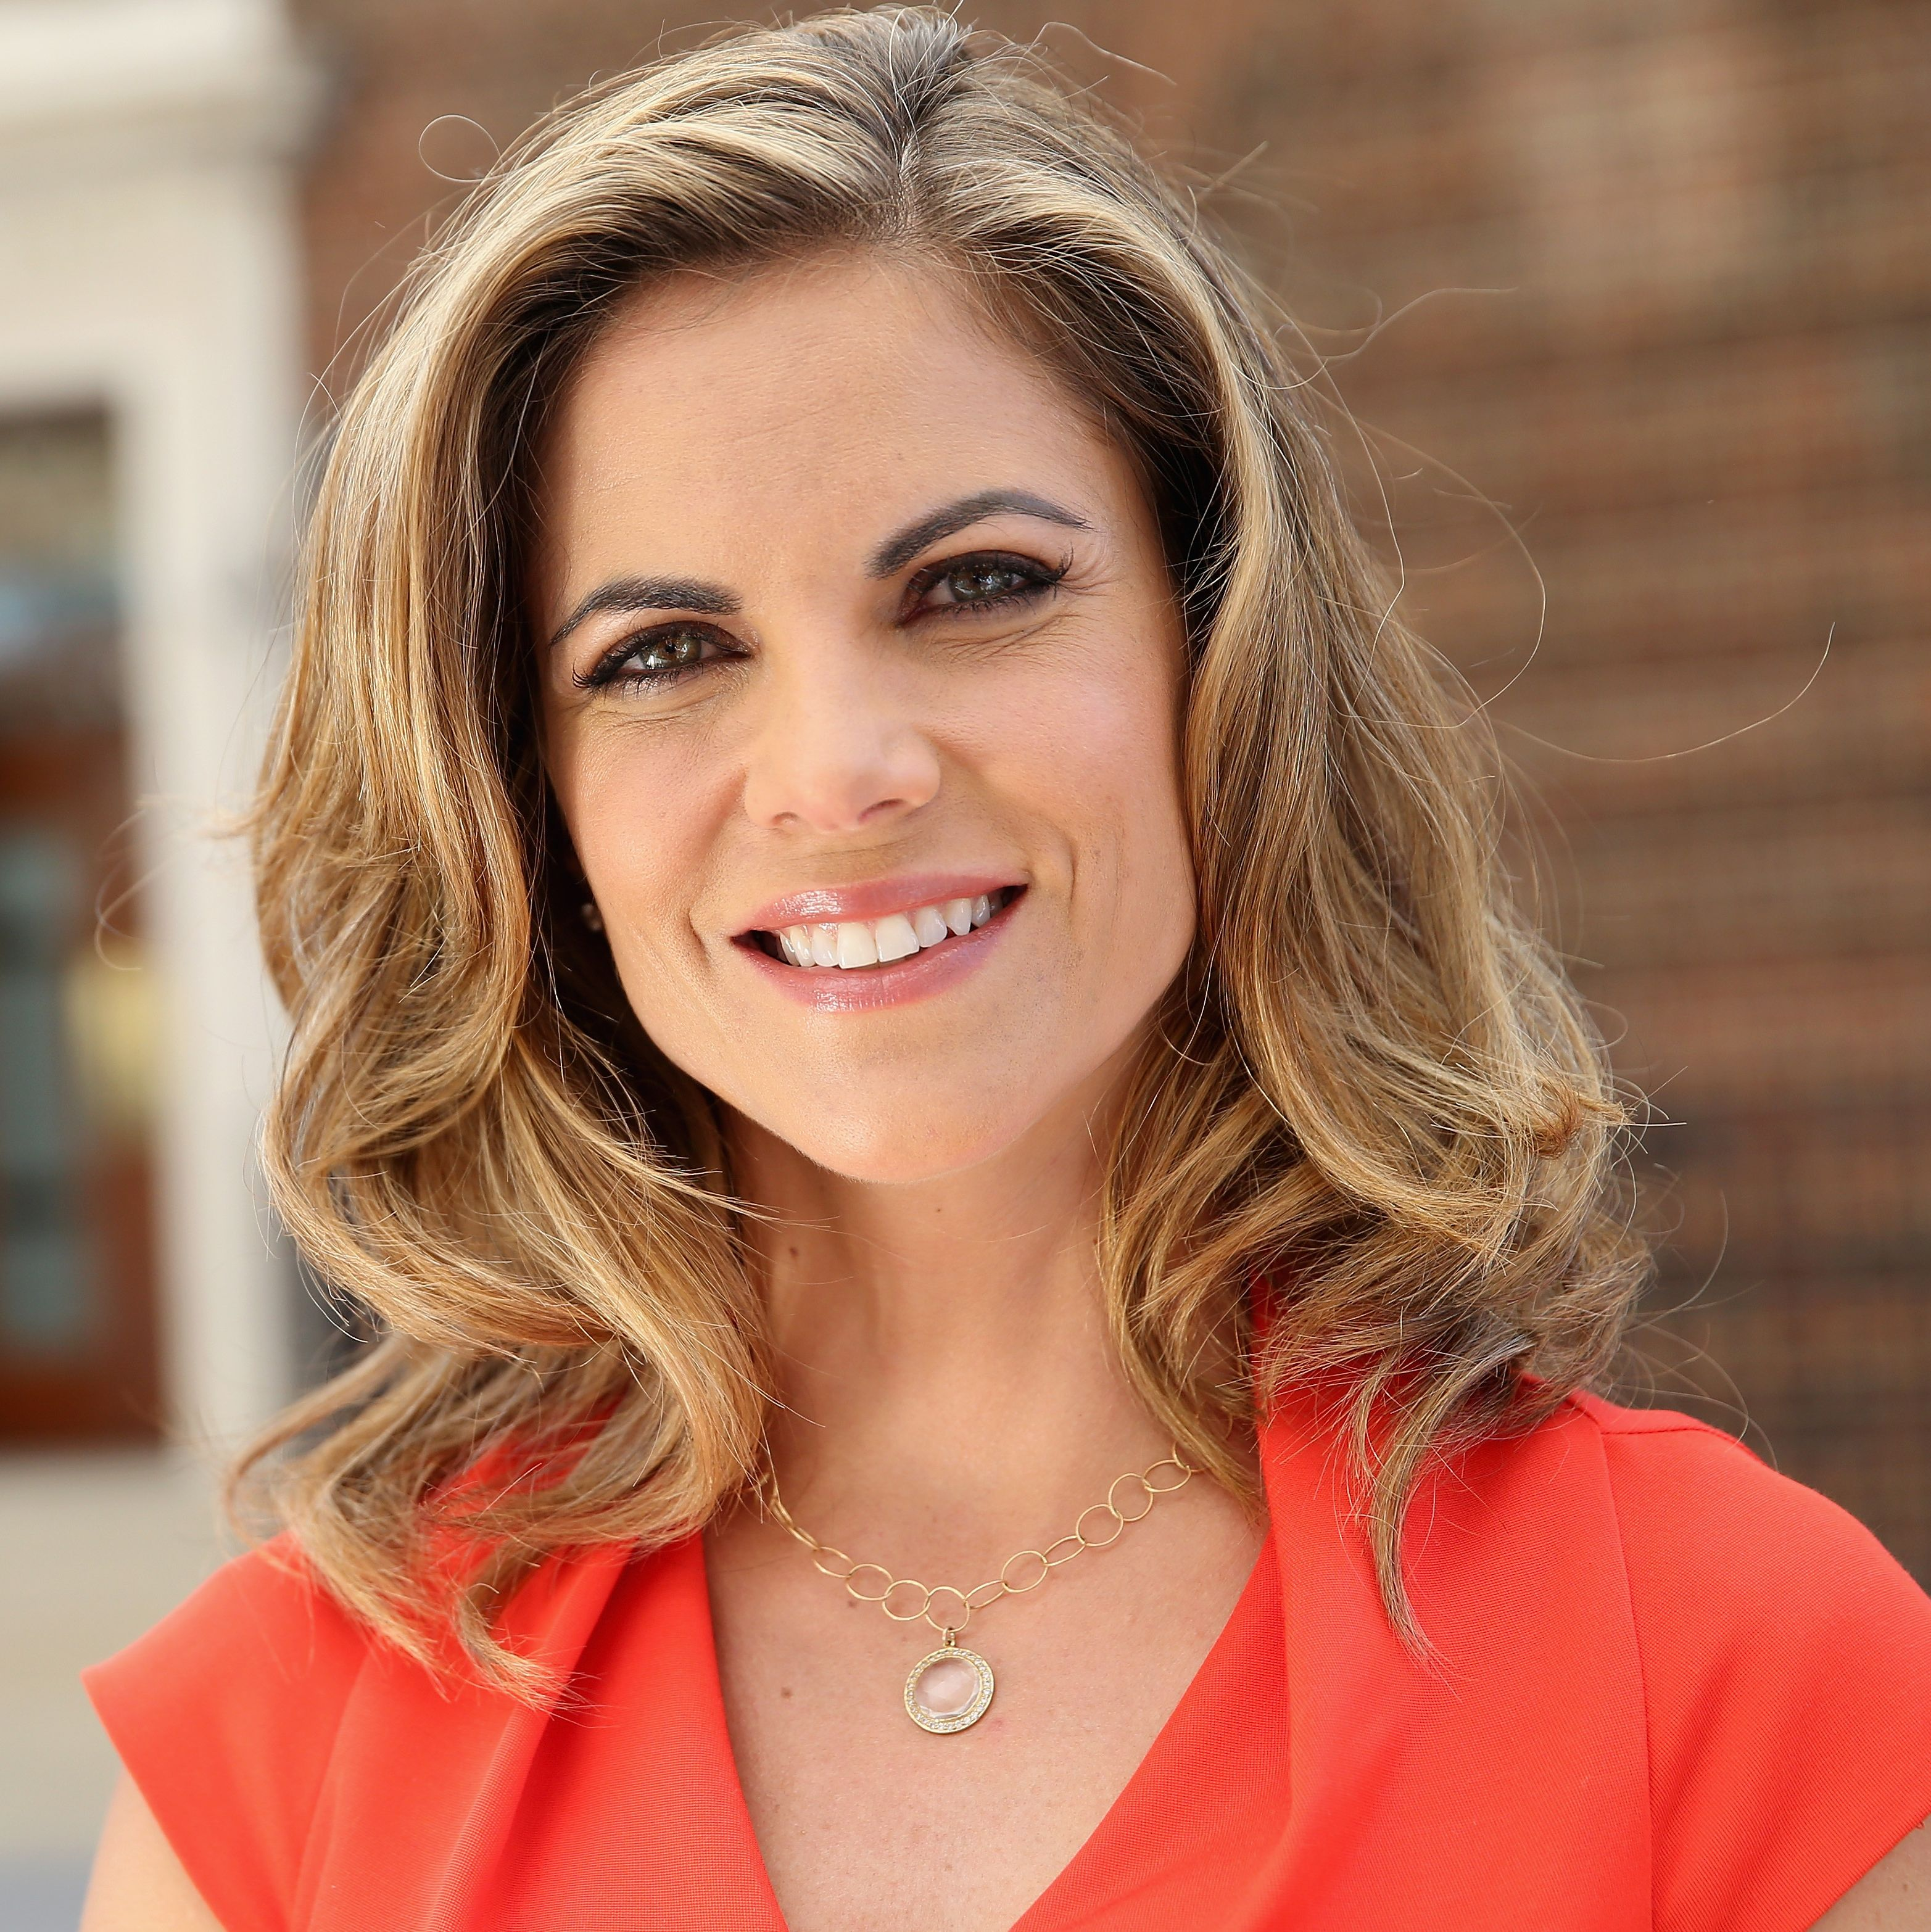 Did Natalie Morales Get Fired From 'Access Live'? The Truth Behind the Rumors